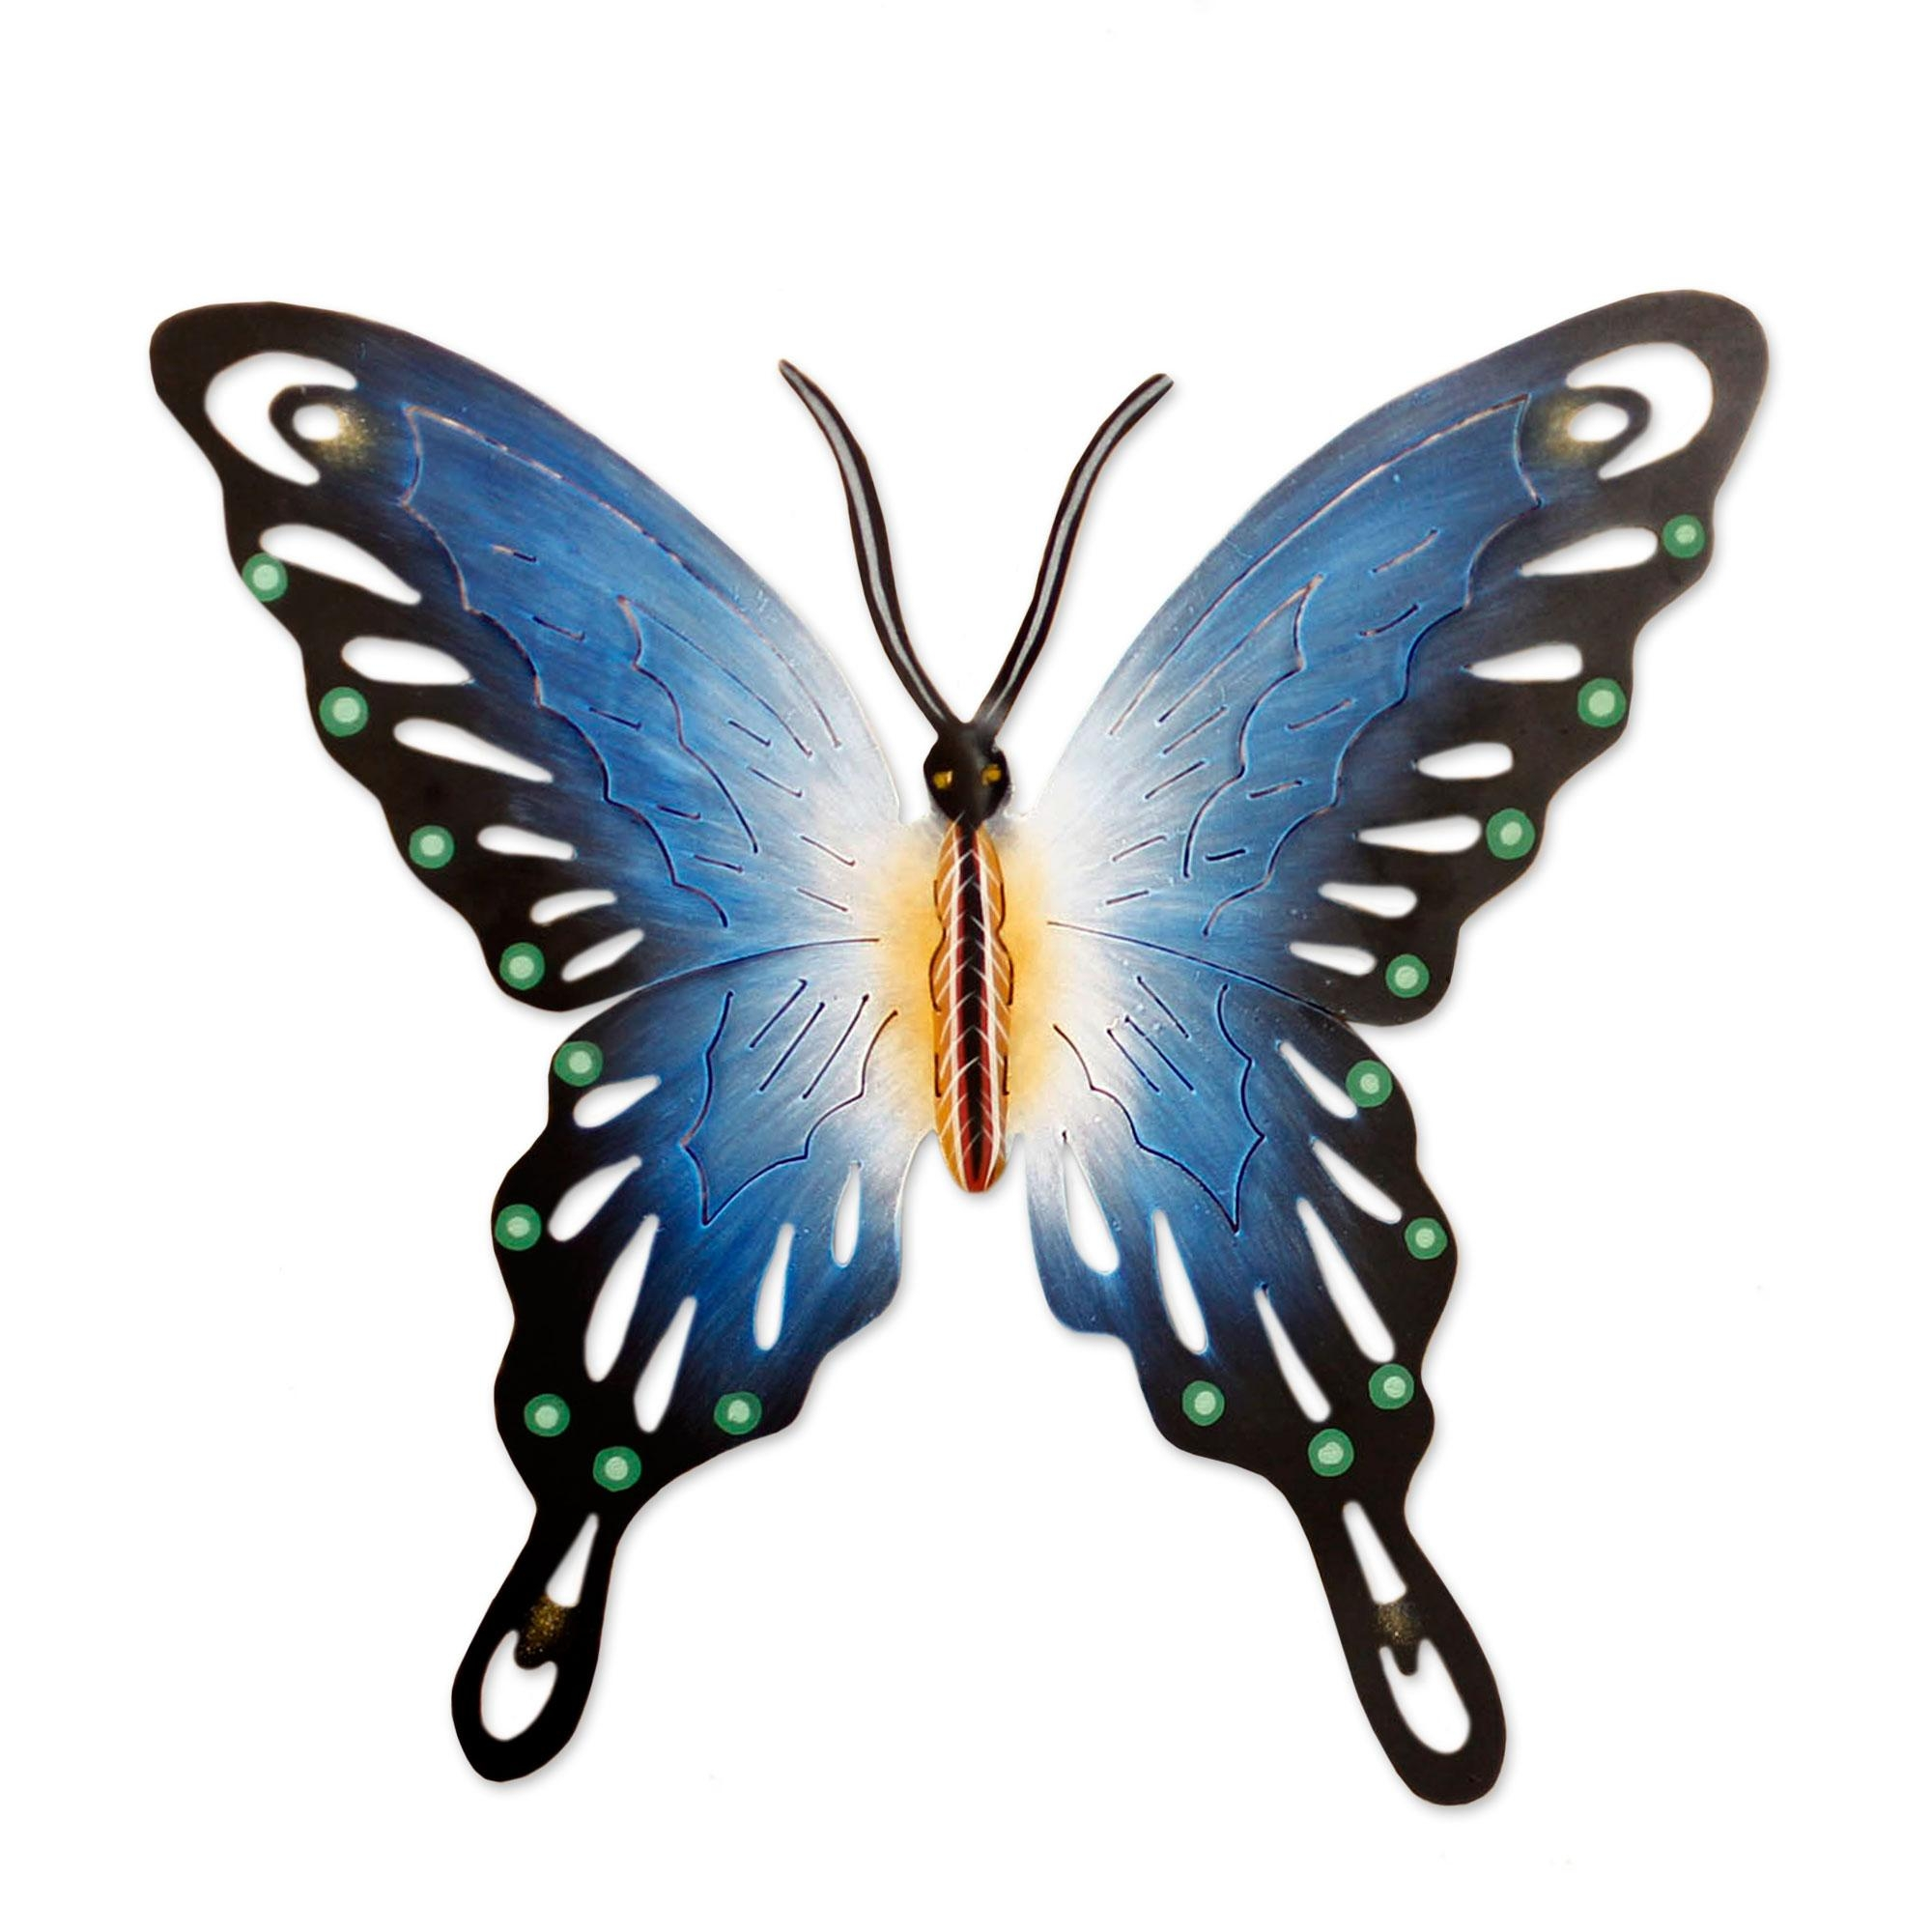 Wall Art At Novica Inside Ceramic Butterfly Wall Art (Image 20 of 20)